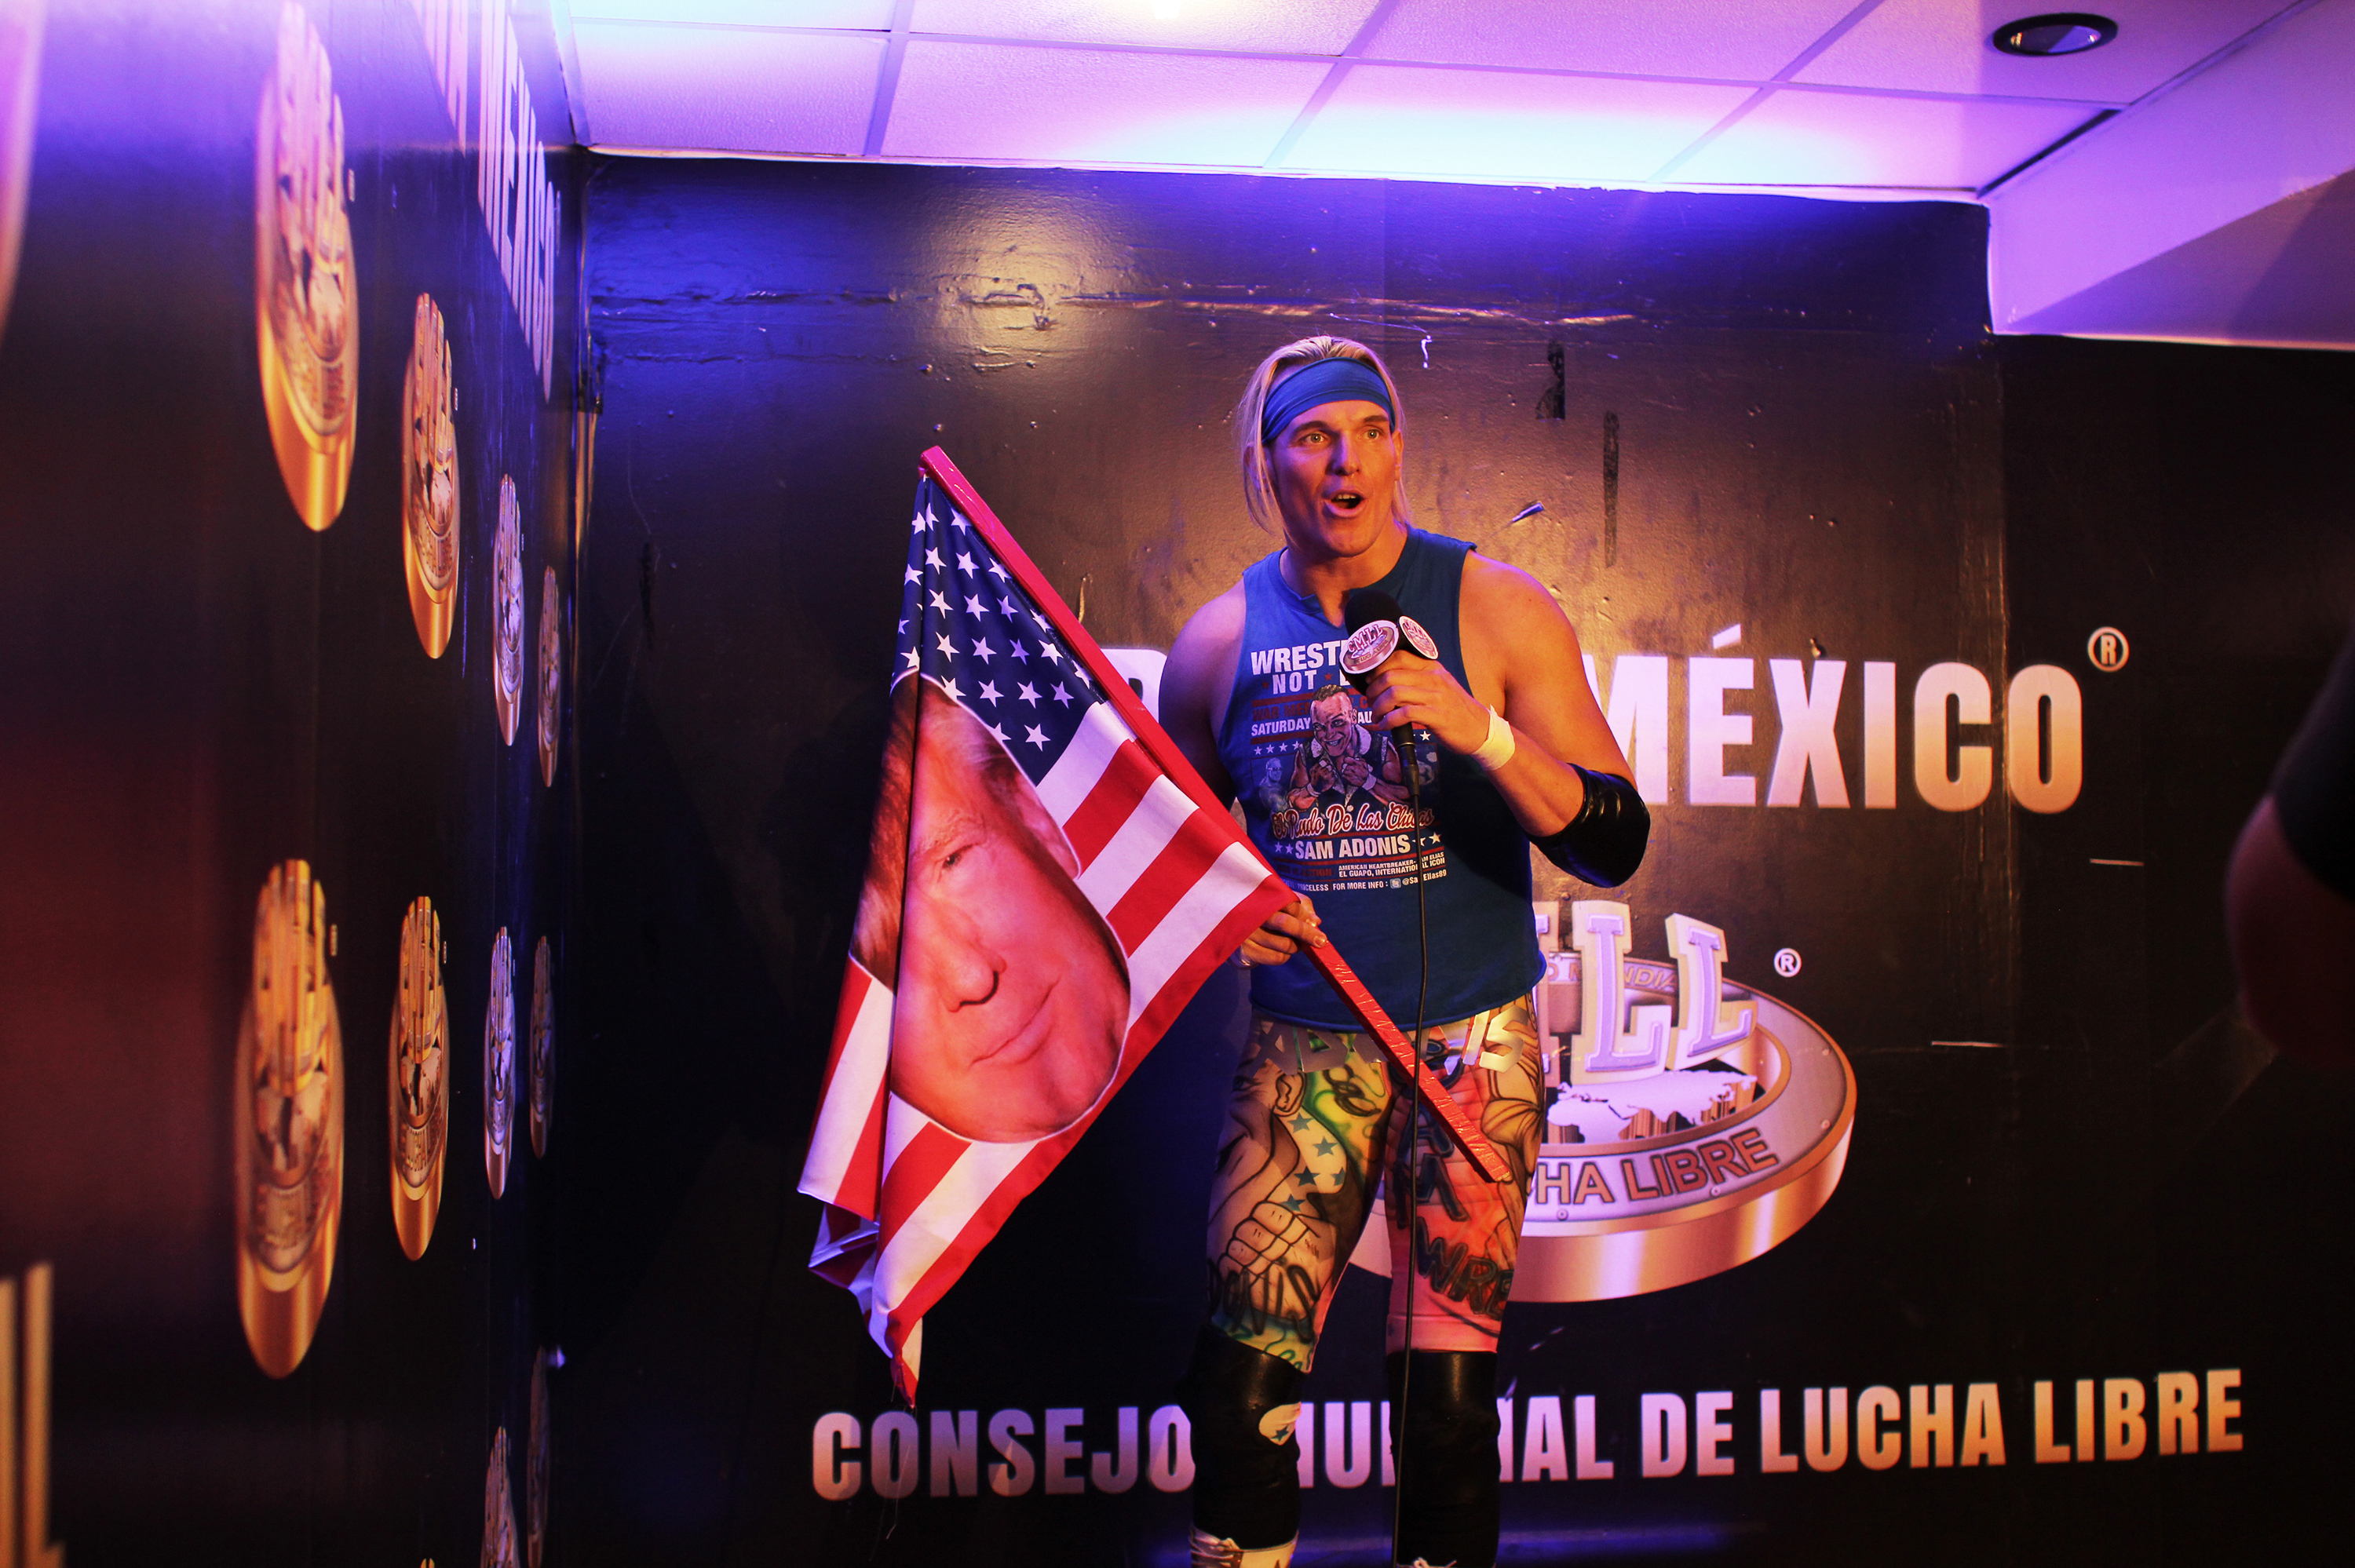 In Mexico, The Crowd Loves To Hate Pro Wrestler Who Plays Trump Supporter